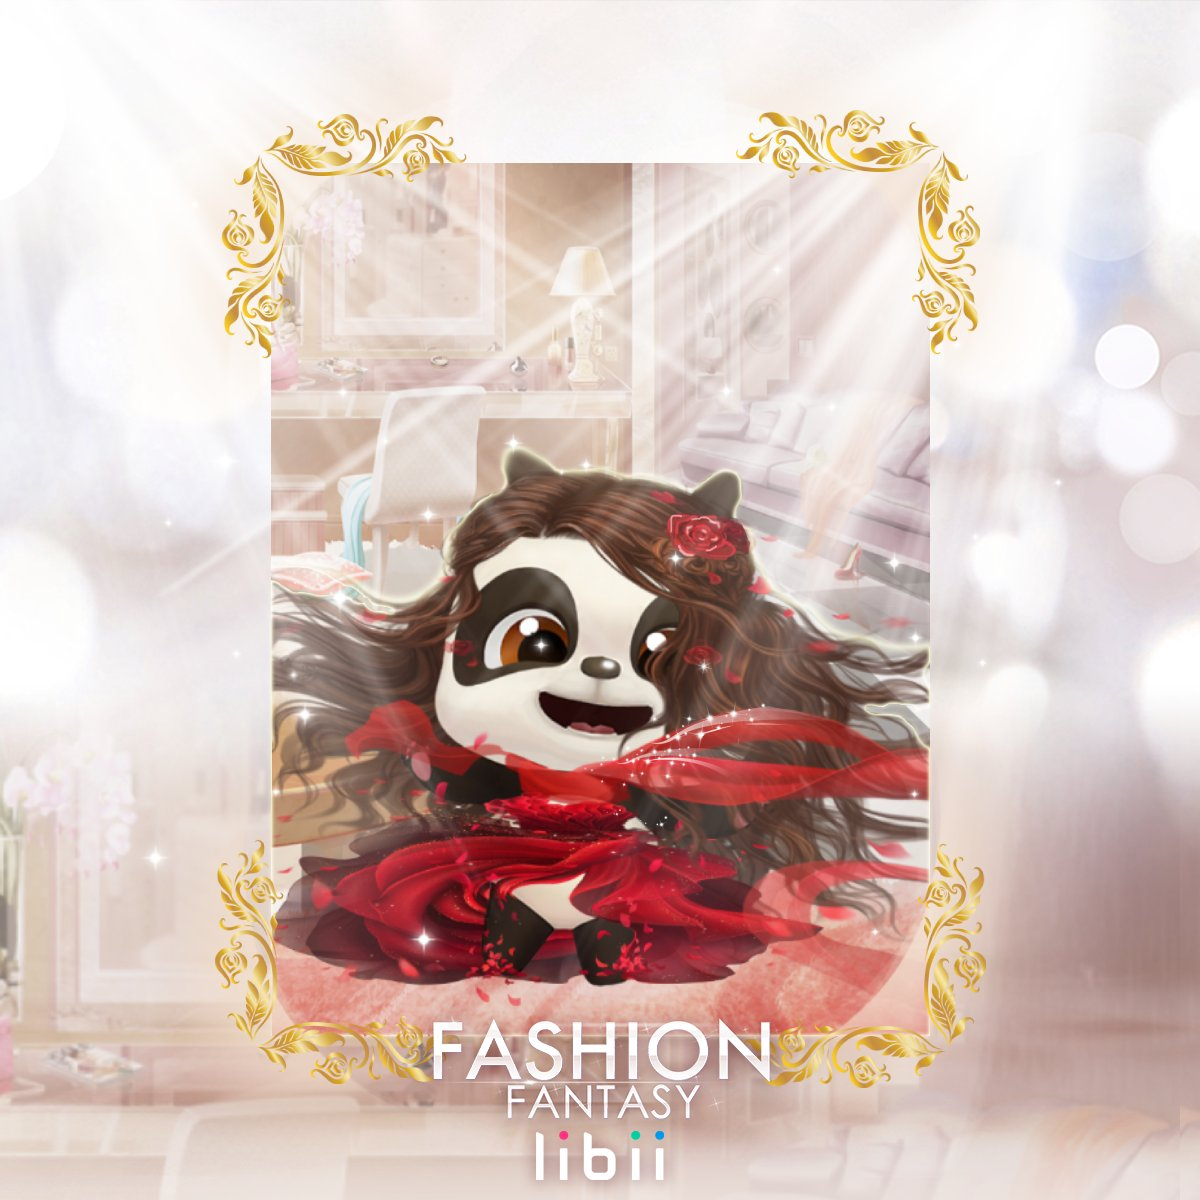 💛What if our beloved #PANPAN is in #FASHIONFANTASY?💃🏼 (Don't worry, it's just for a laugh! Teehee) #Justforlaugh . #Libii #mytalkingpan #FF #game #play #app #Panda #熊貓 #appsforkids #遊戲 #android #toddler #cute #like #kids #children #entertainment #minigame #one #bff #anime https://t.co/QJG3T2kmVu